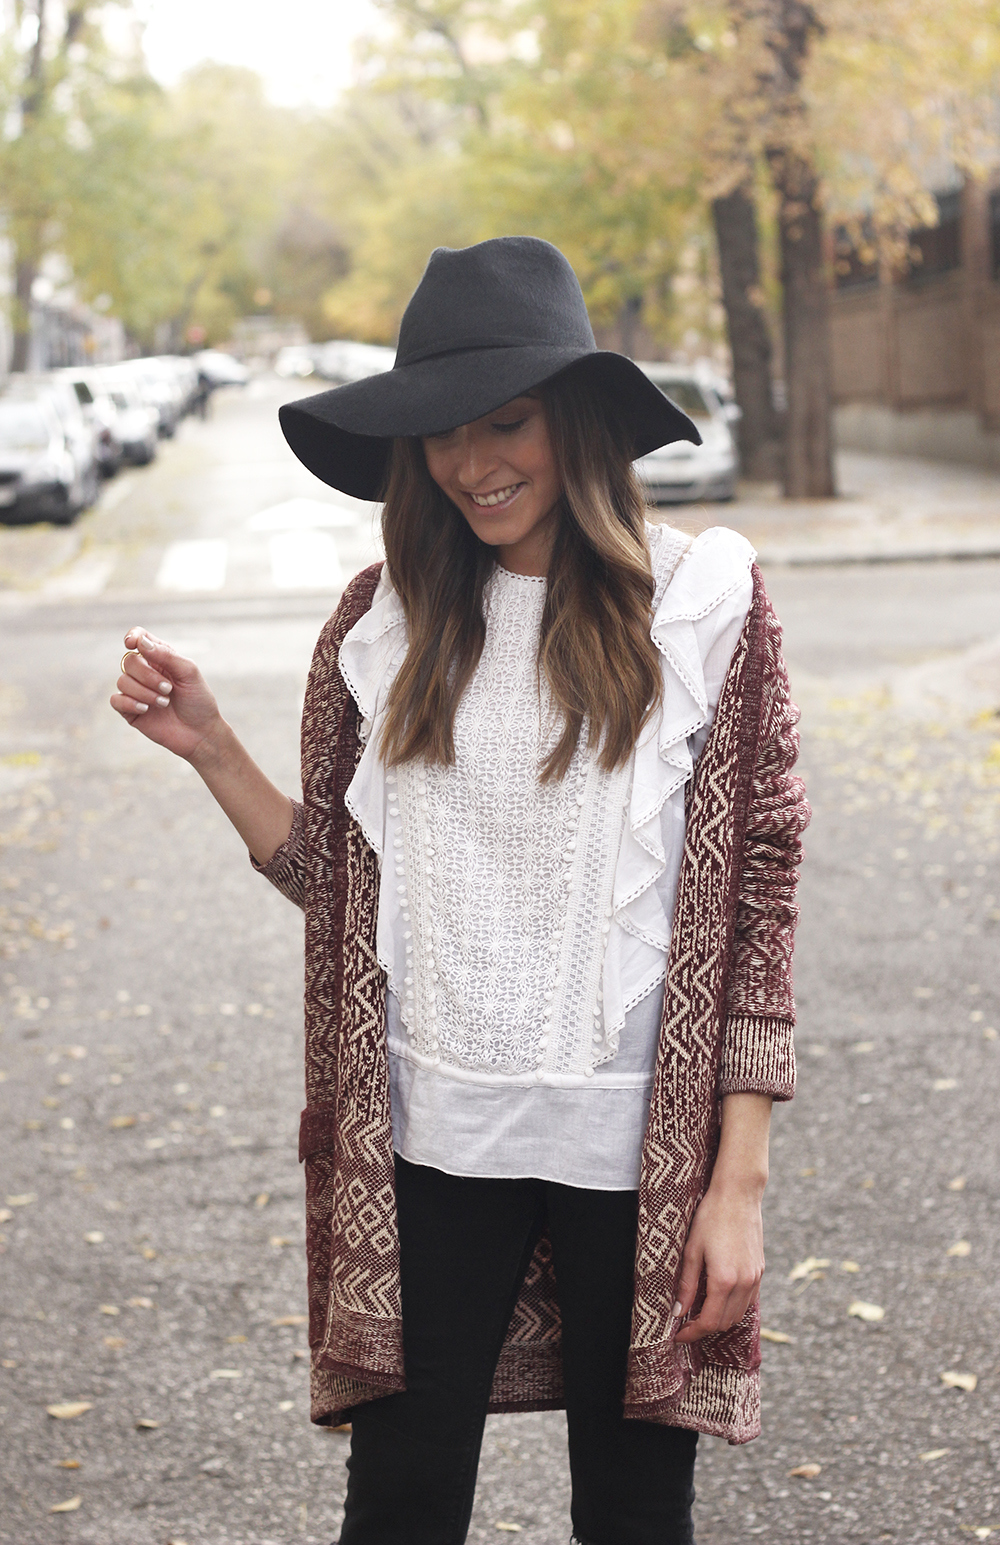 white blouse cardigan black jeans hat heels mdm fashion casual outfit10